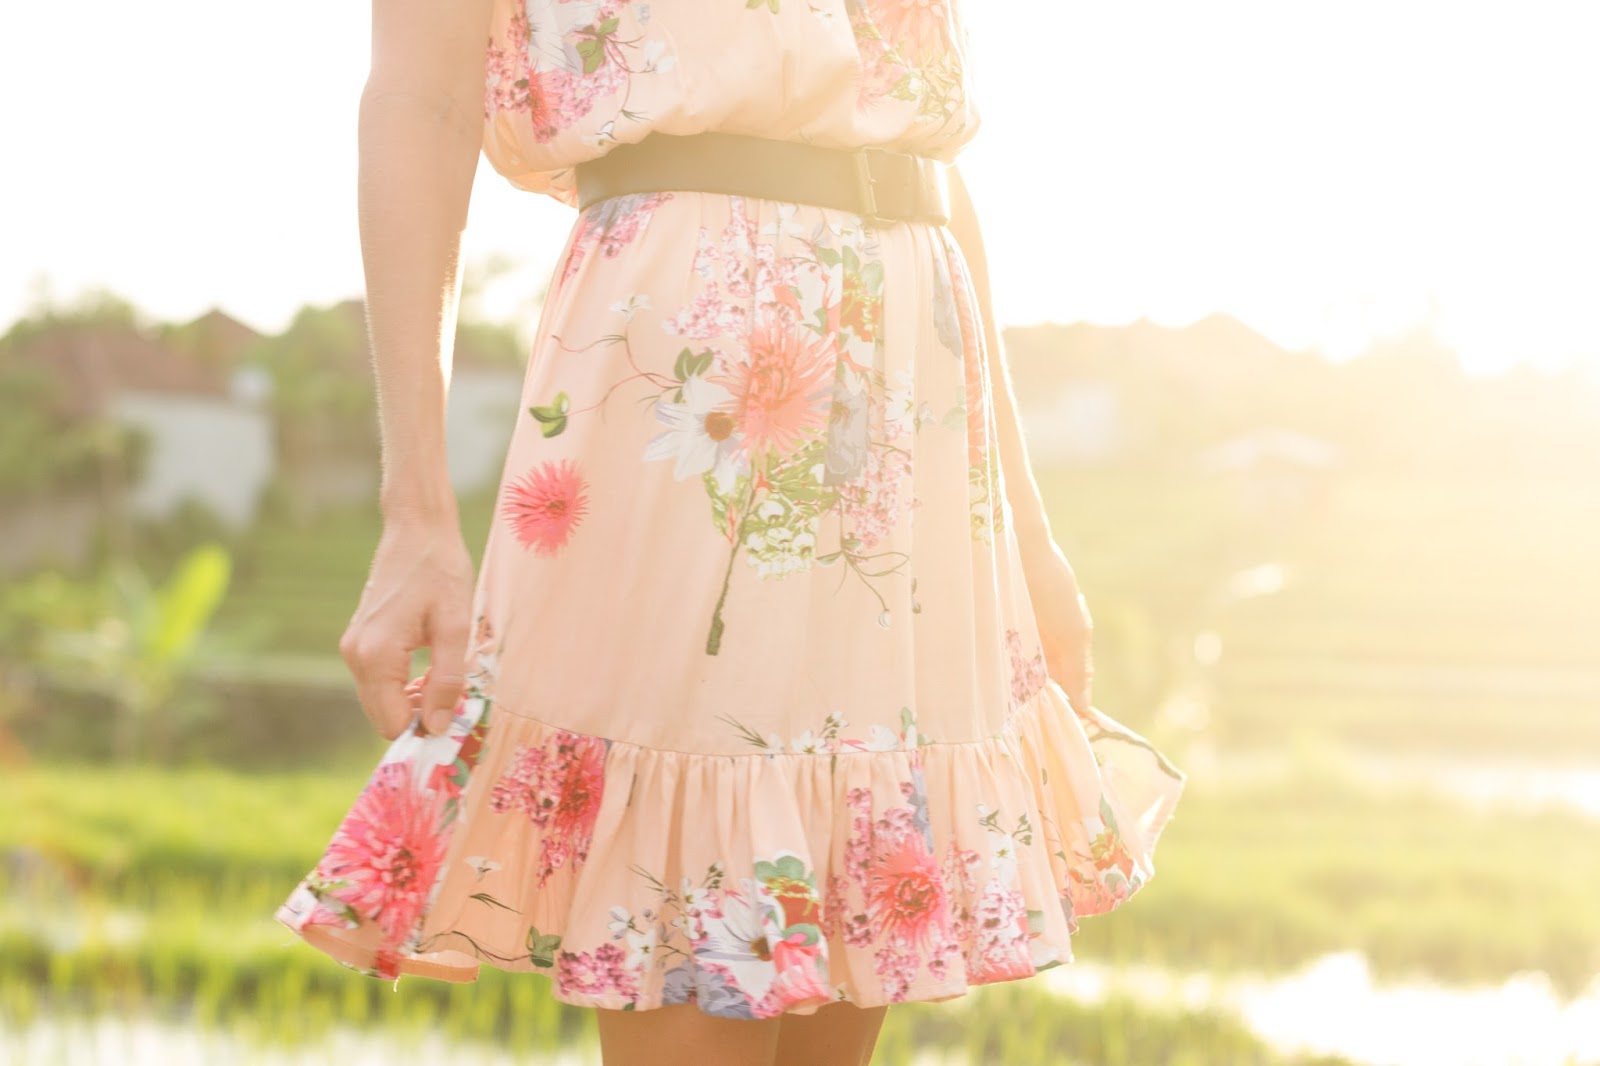 Fashion blogger, Alison Hutchinson, is wearing a KAYVALYA Rosie off the shoulder dress in pink floral